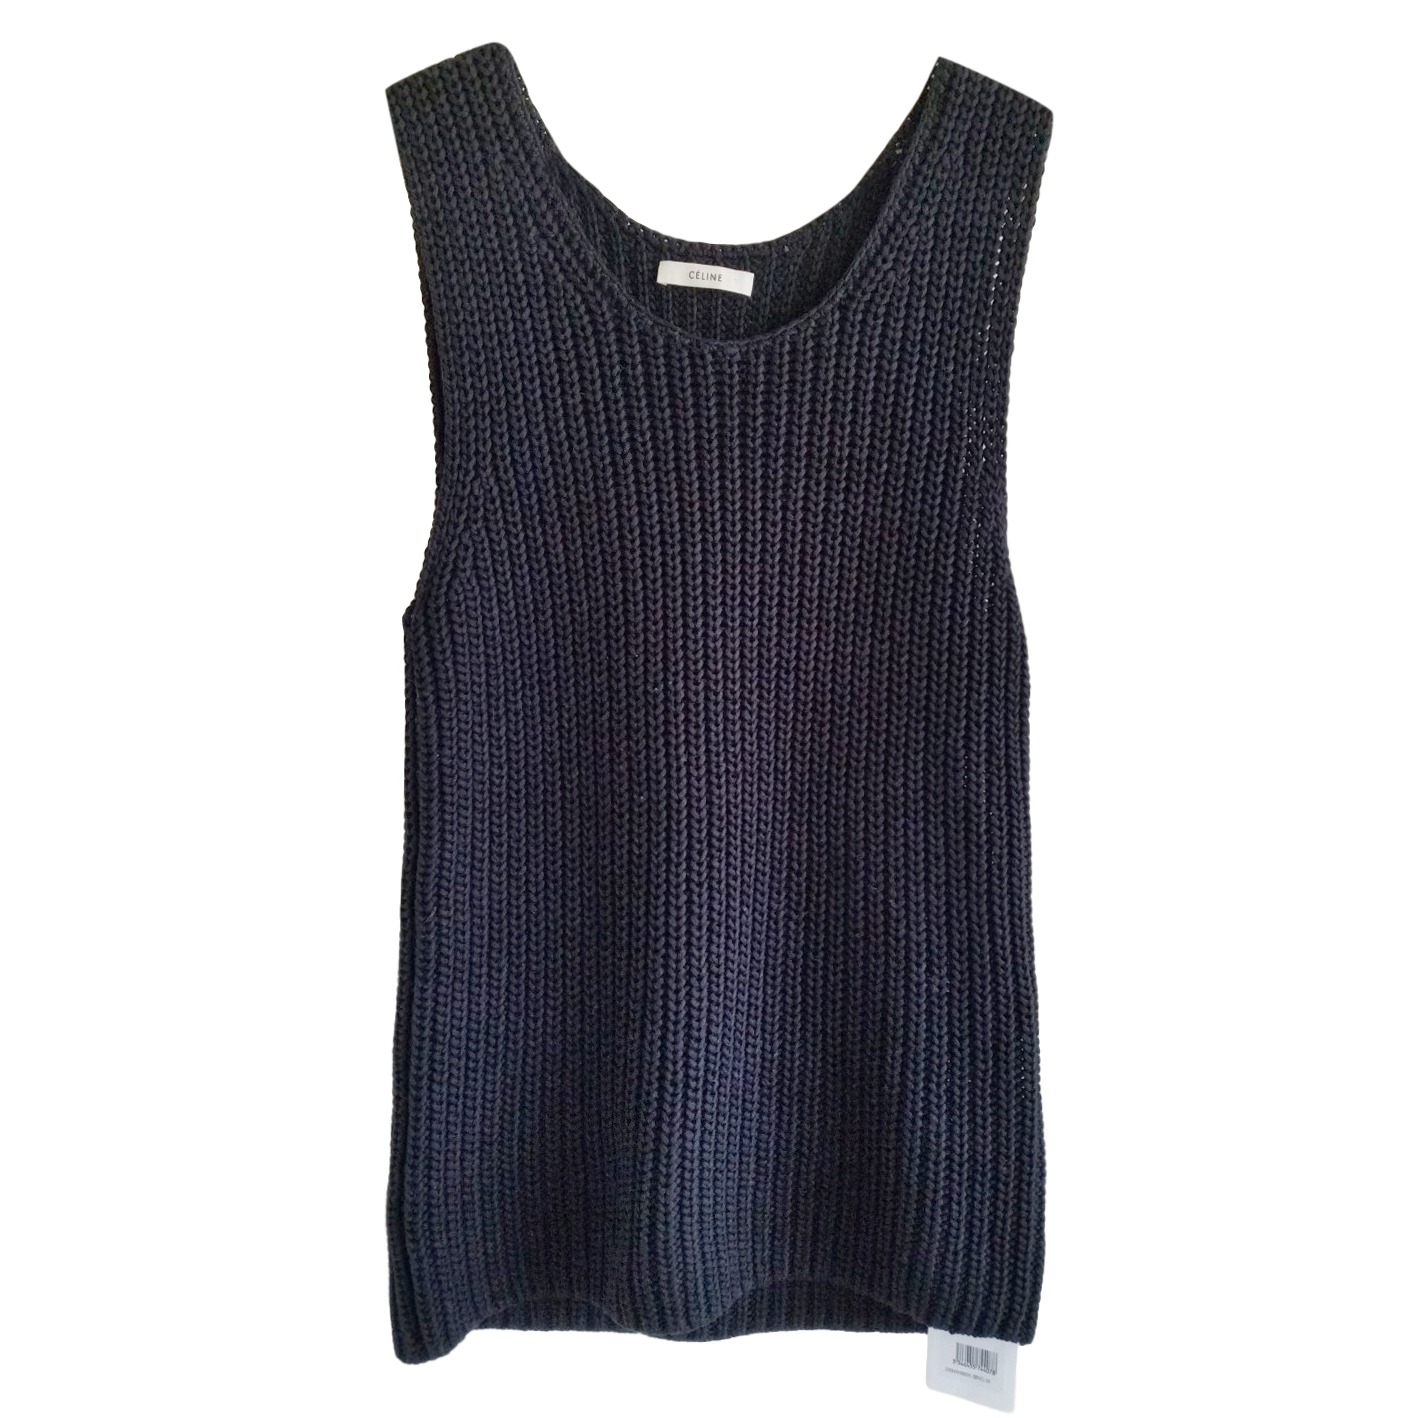 2d6c7224295 Celine By Phoebe Philo Ribbed Knit Sleeveless Top | HEWI London